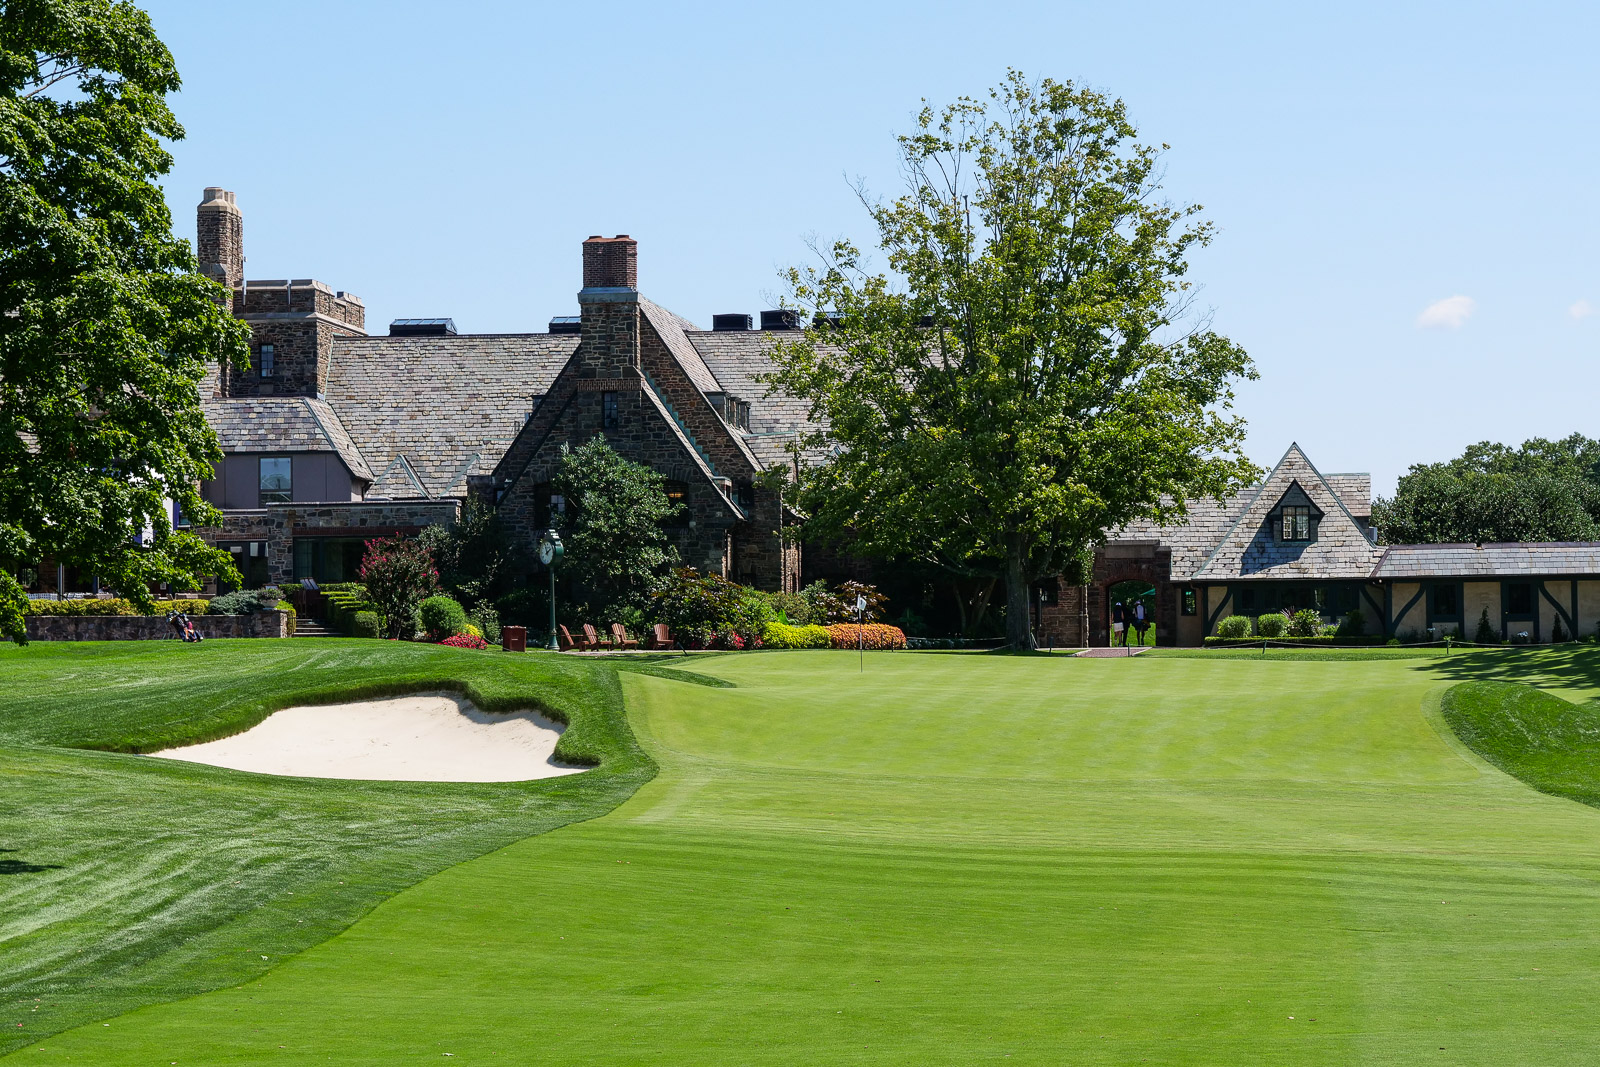 The 18th at Winged Foot West with the historic clubhouse in the background.